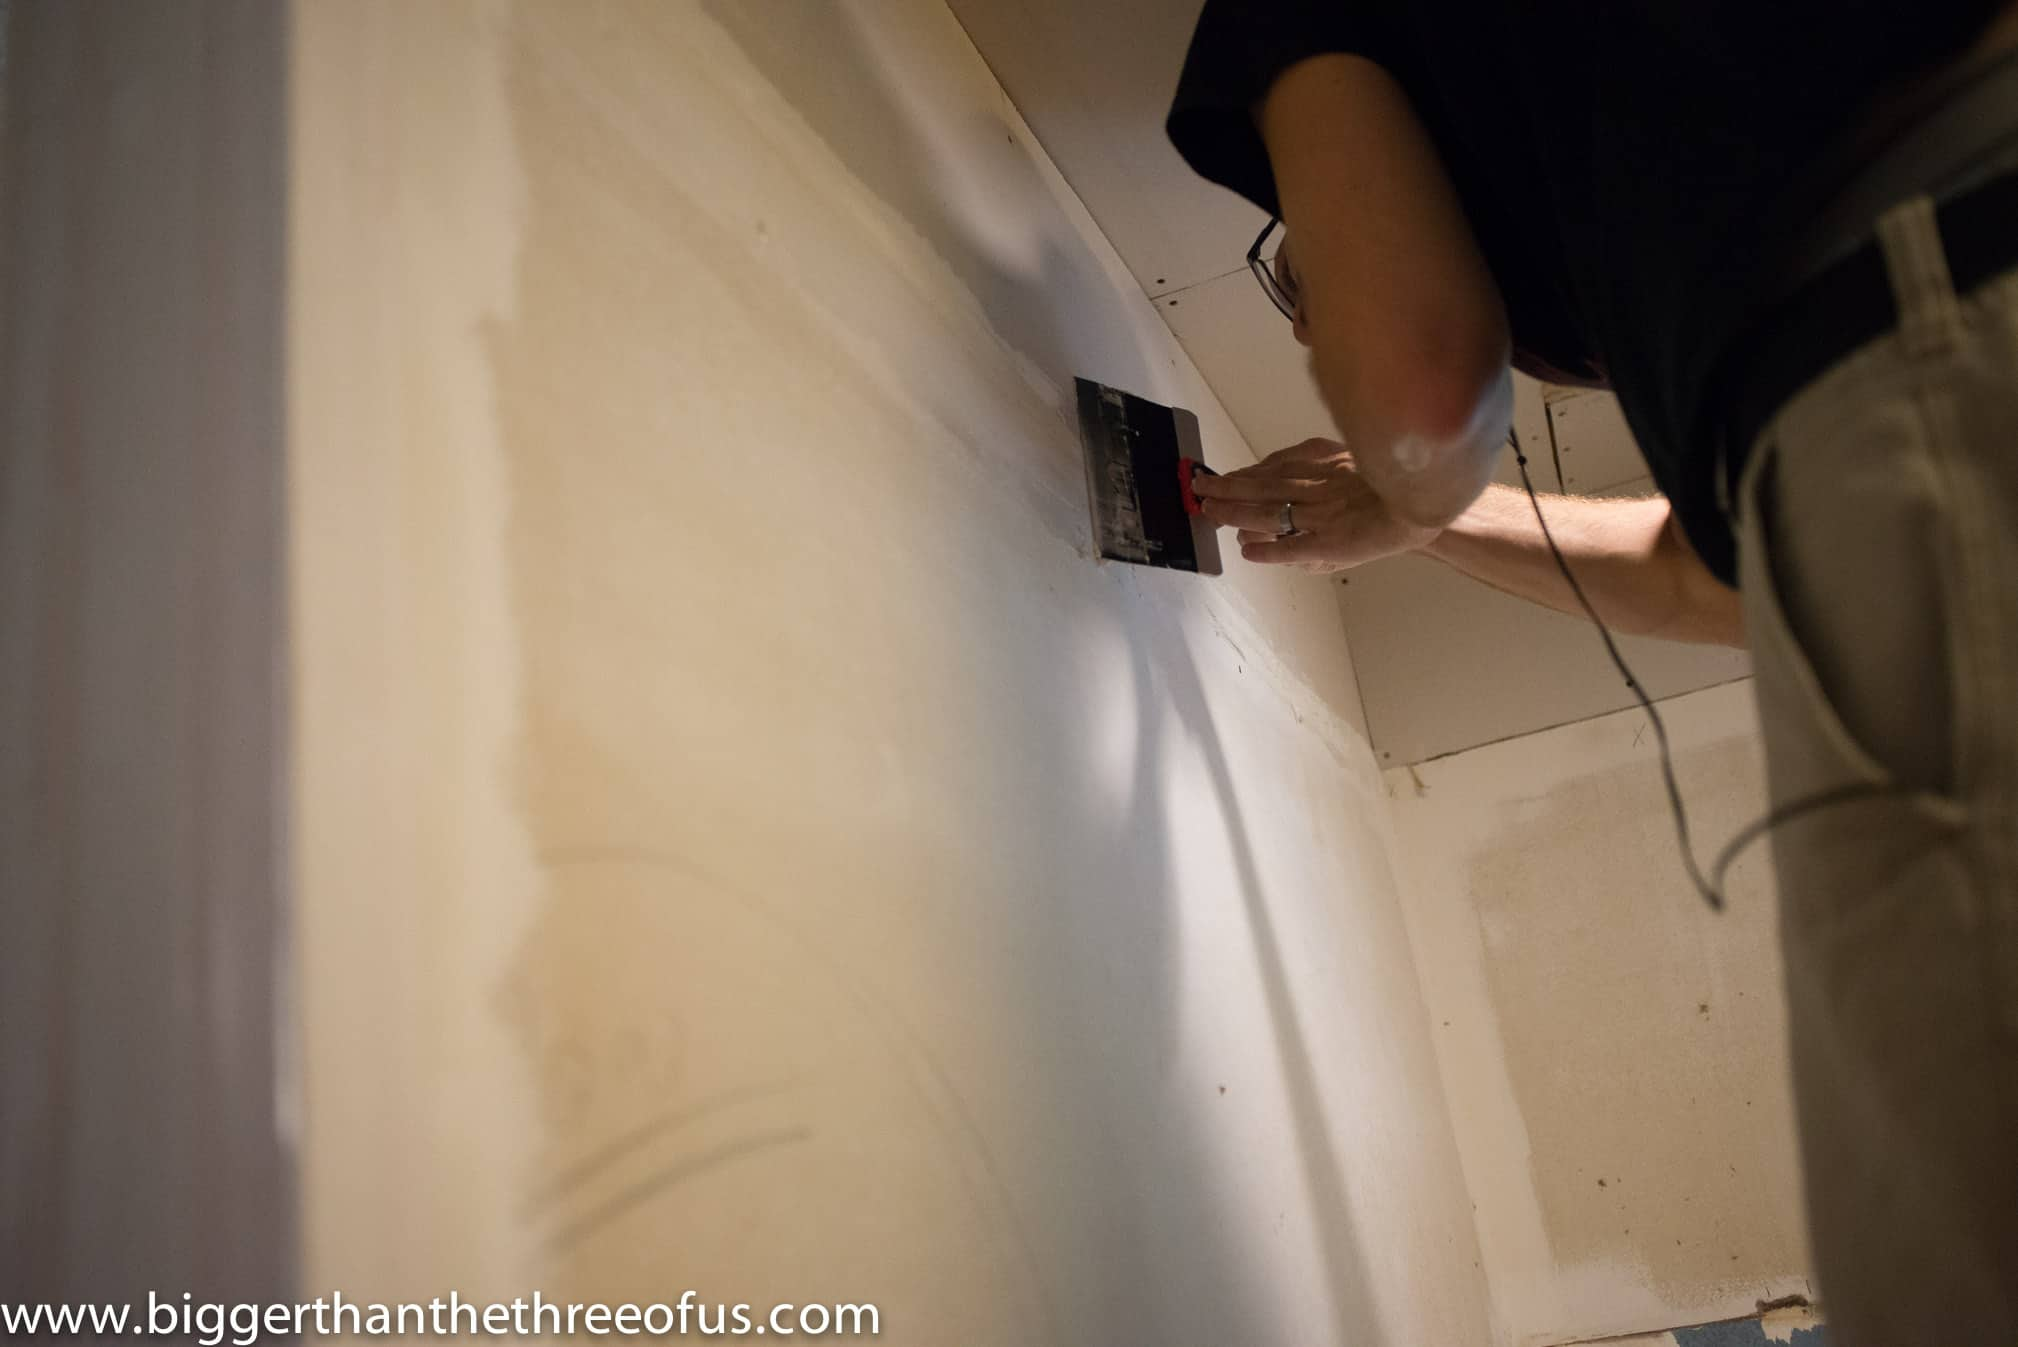 *As with every application of mud, try to smooth and arc so that the drywall looks smooth. This will help with the reapplication process.